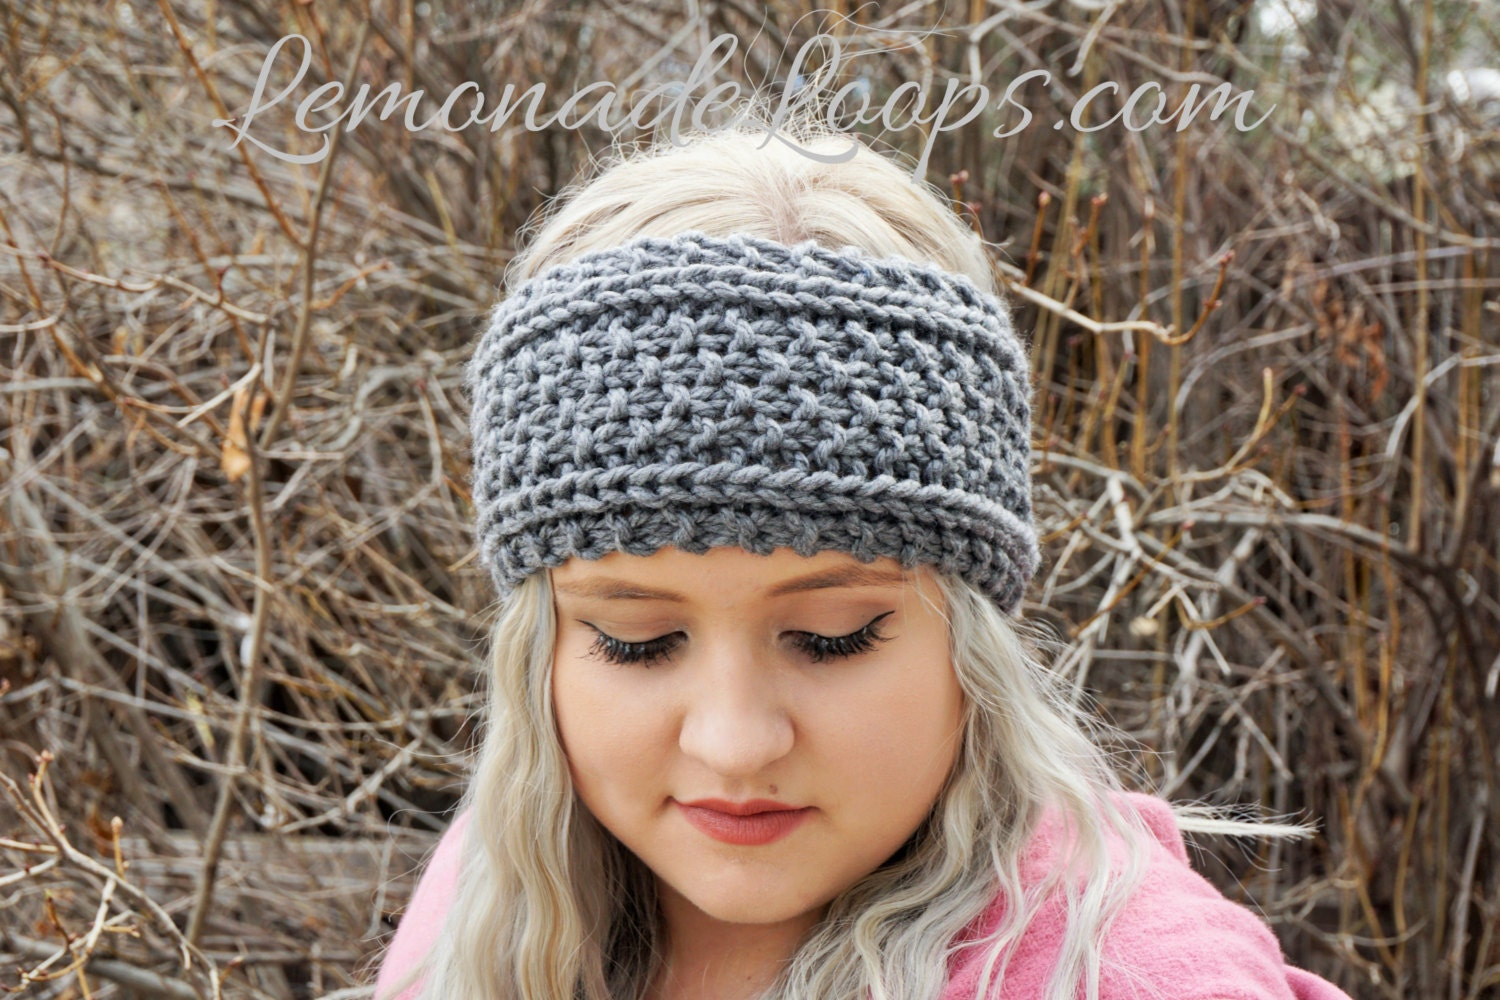 Knitting Headband Patterns For Beginners : Knit Pattern Aemilia Headband Earwarmer Beginner Level in 7